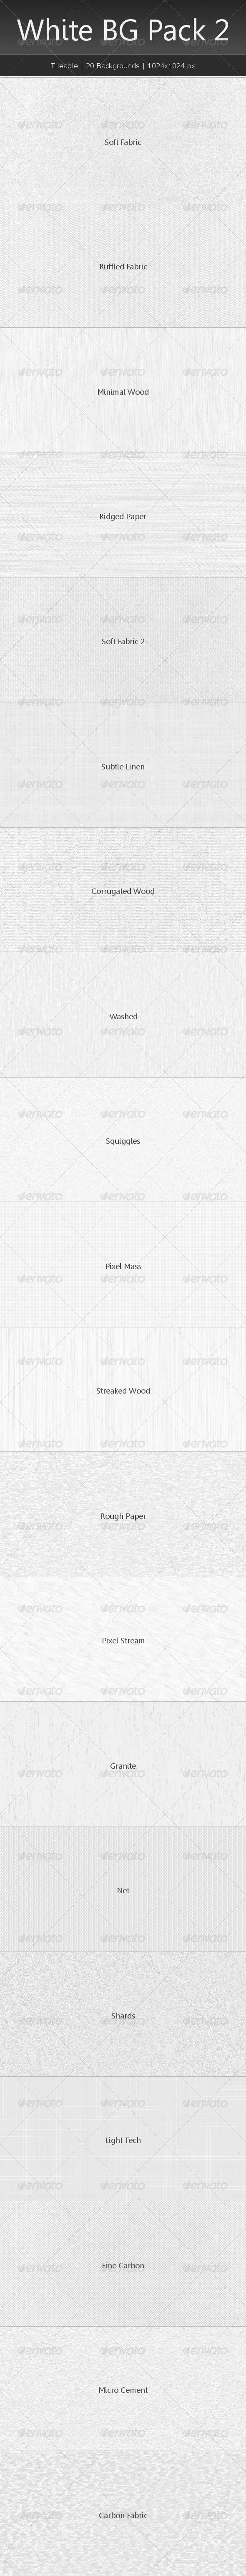 Tileable White Background Pack 2 - Patterns Backgrounds